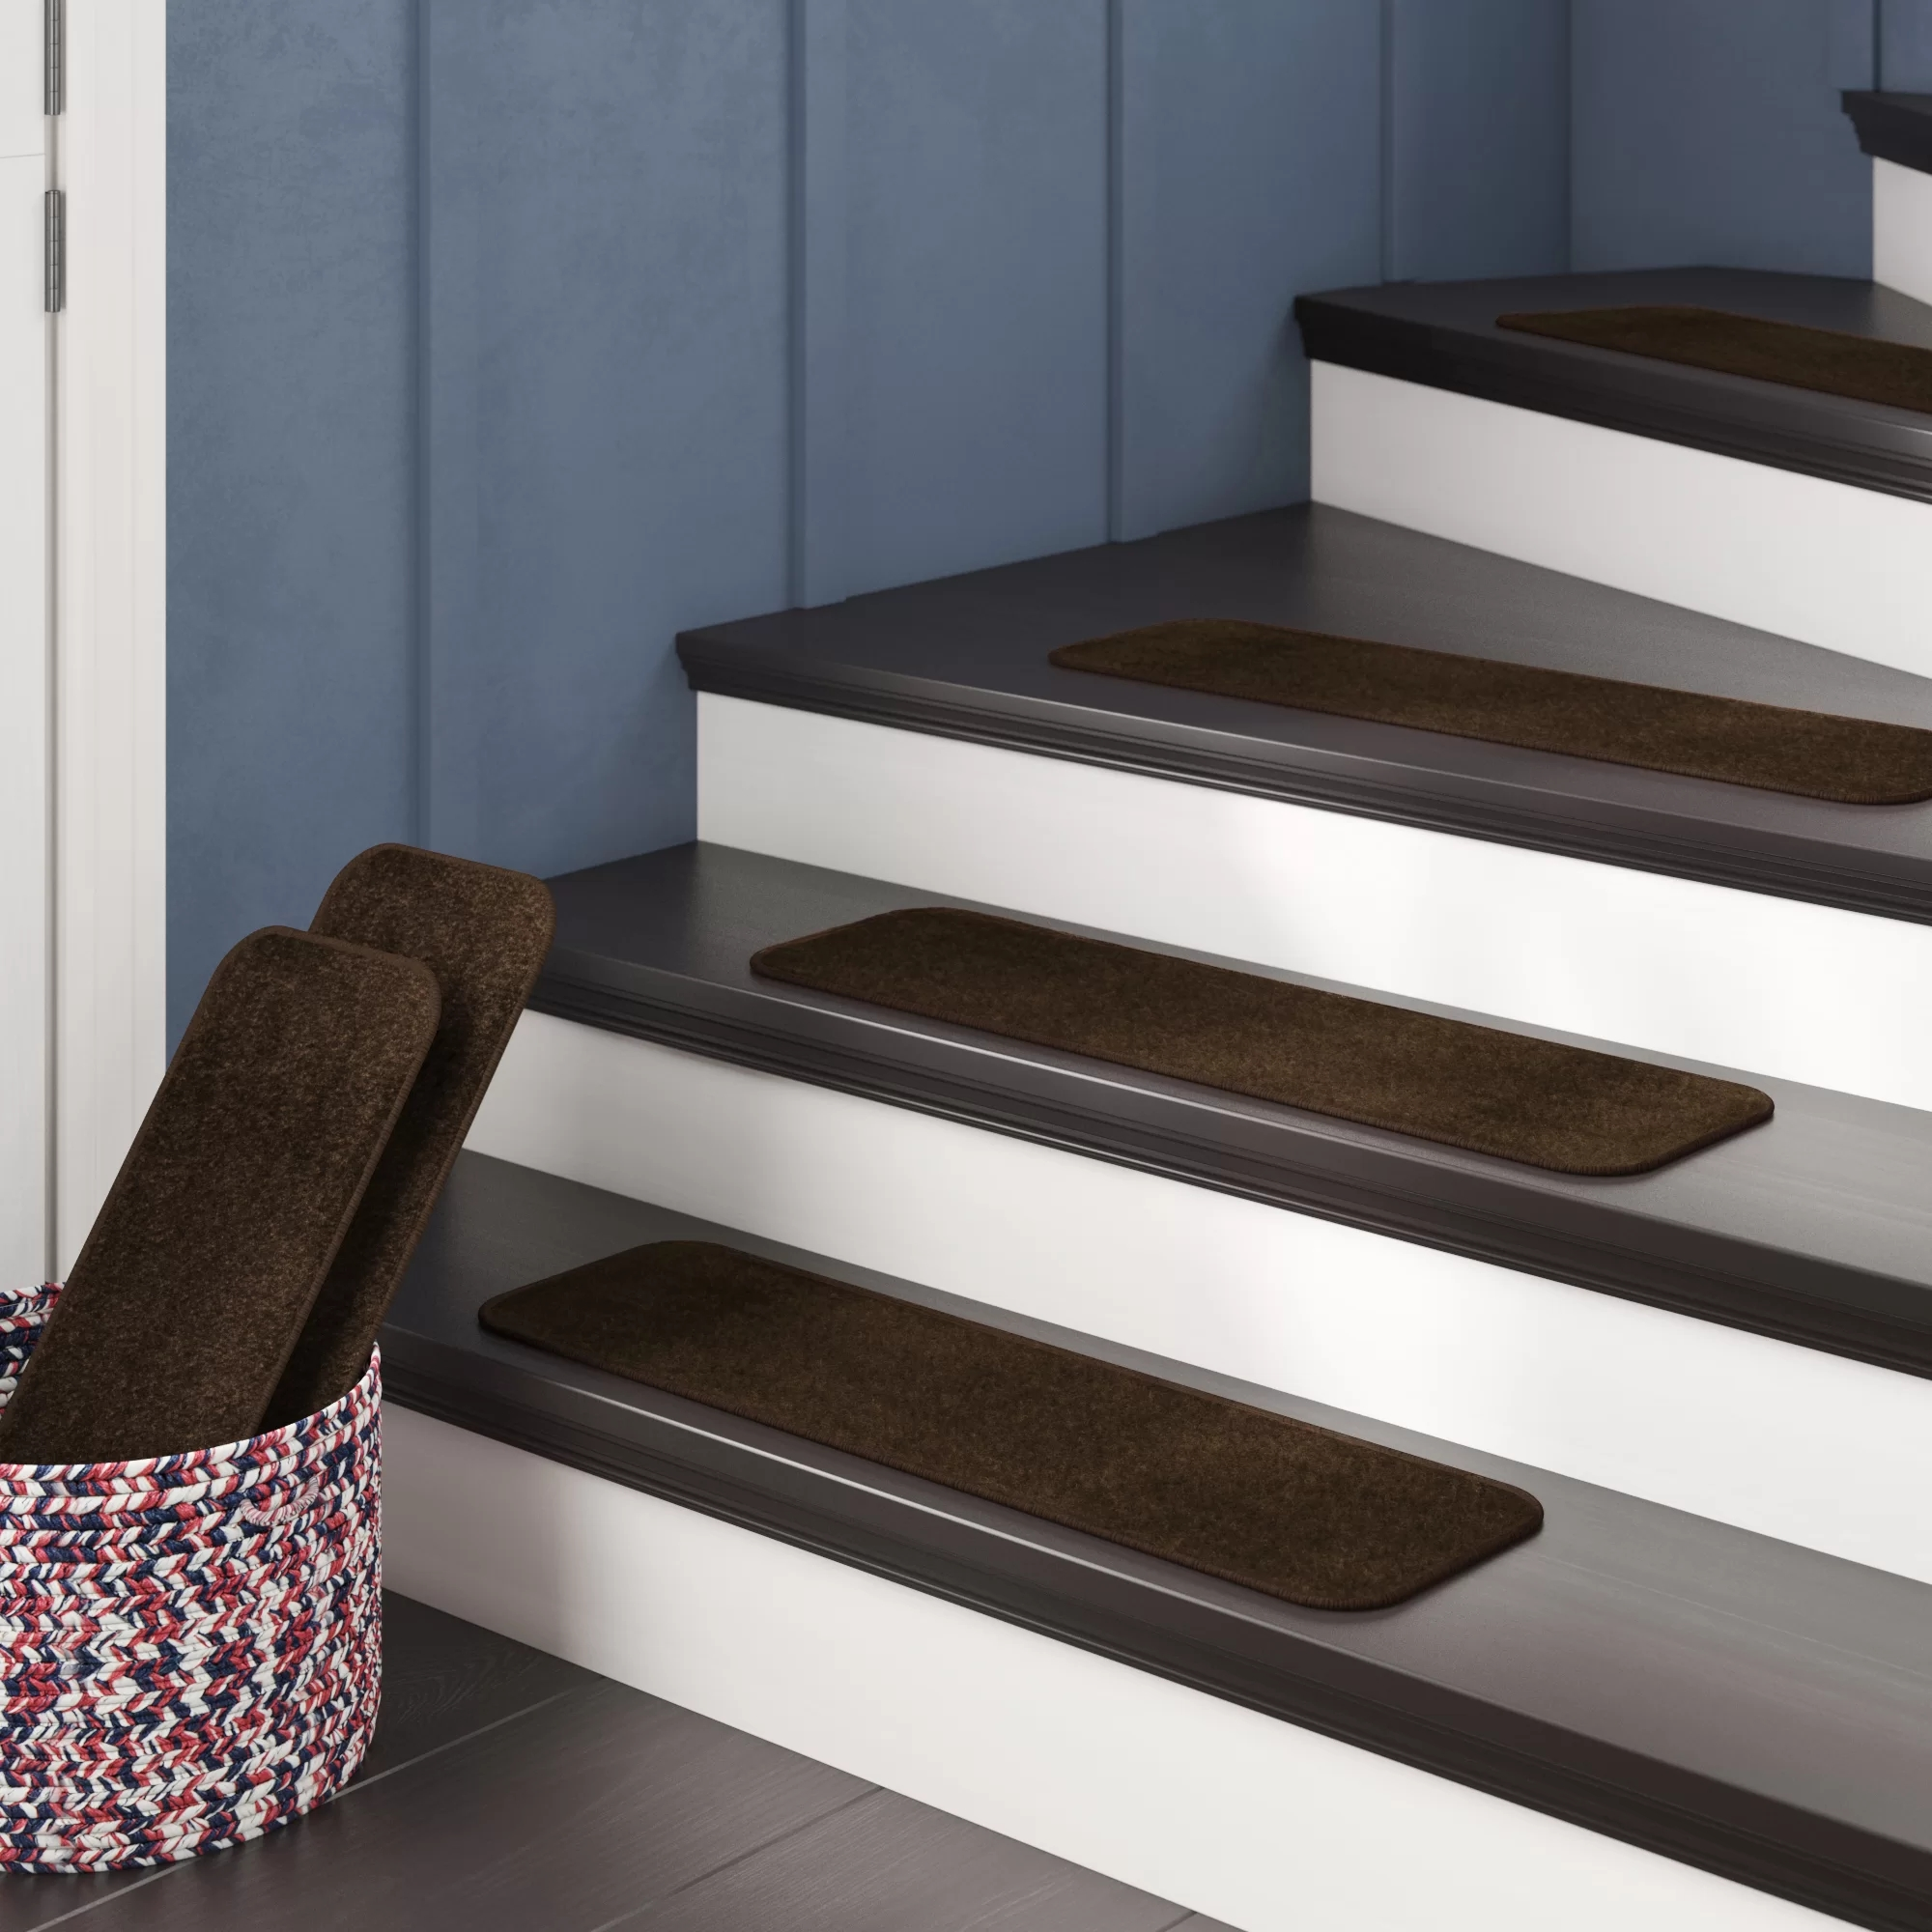 Andover Mills™ Carreras Pile Stair Treads Reviews Wayfair | Braided Stair Treads With Rubber Backing | Non Slip | Skid Resistant | Anti Slip | Heritage Farms | Slip Resistant